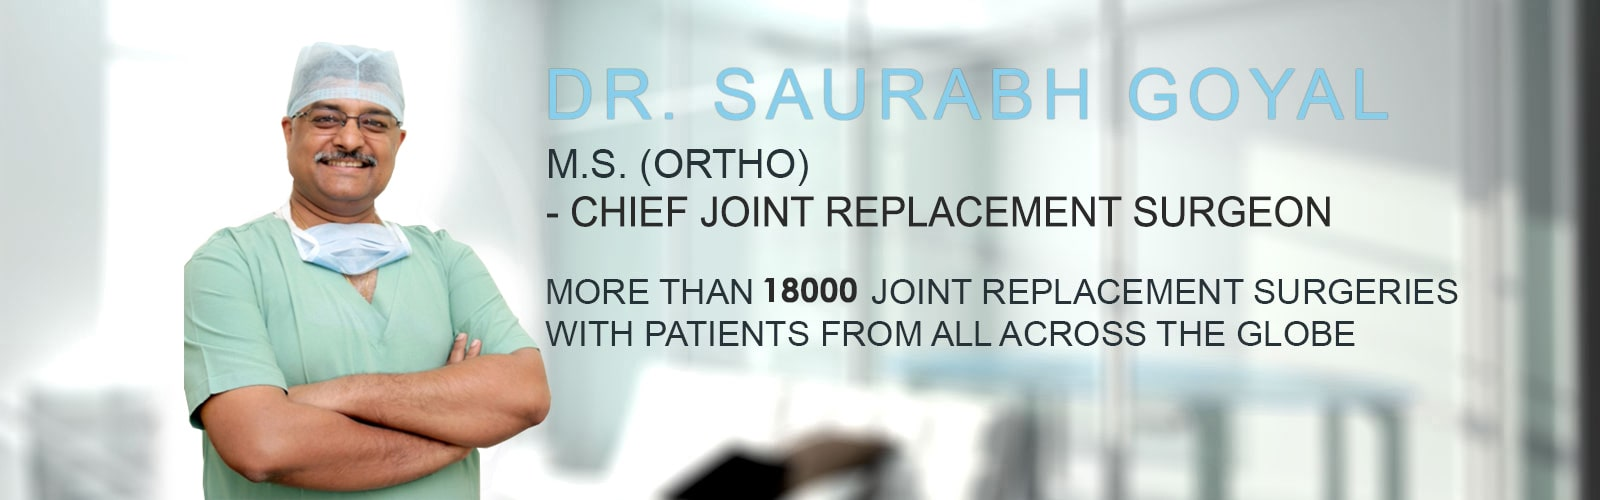 Best Orthopedic Doctor Jaipur, No 20 Knee Joint Replacement Surgeon ...